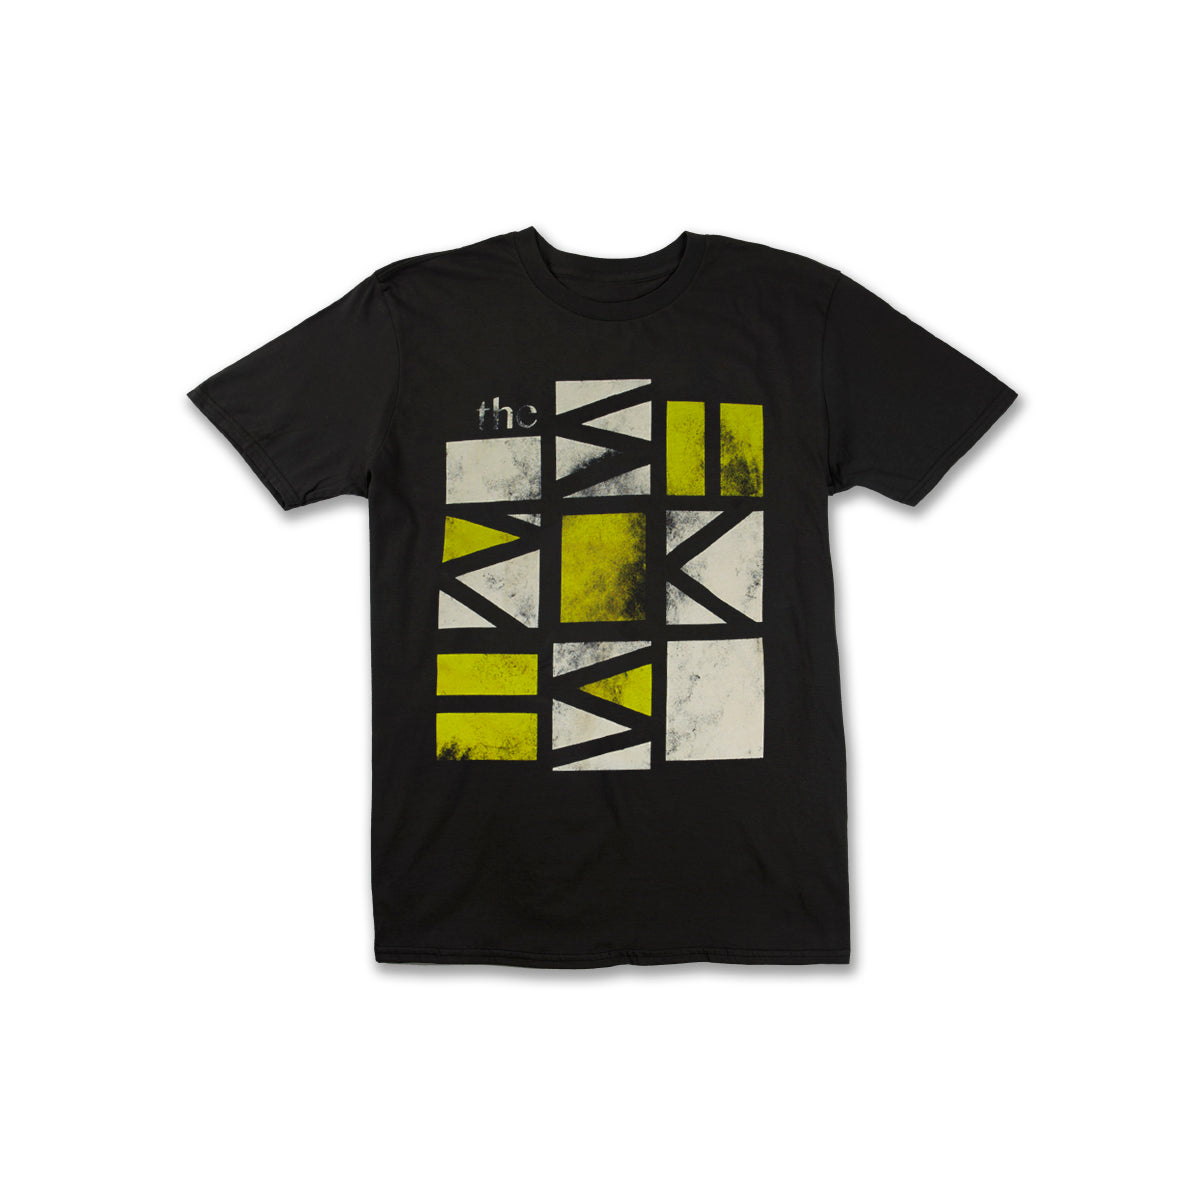 The Strokes Decal Tee